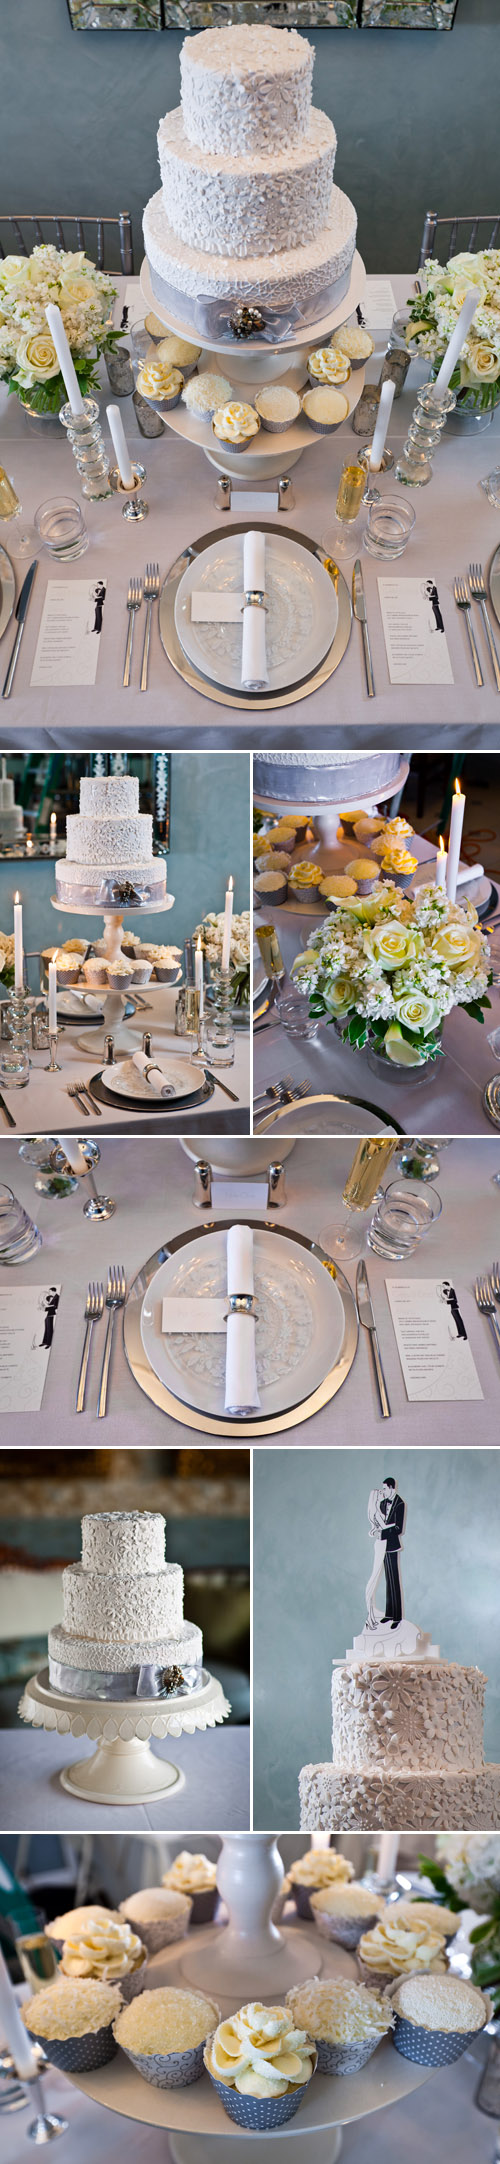 modern and chic white and silver wedding cake, cupcakes and winter wedding table top decor ideas